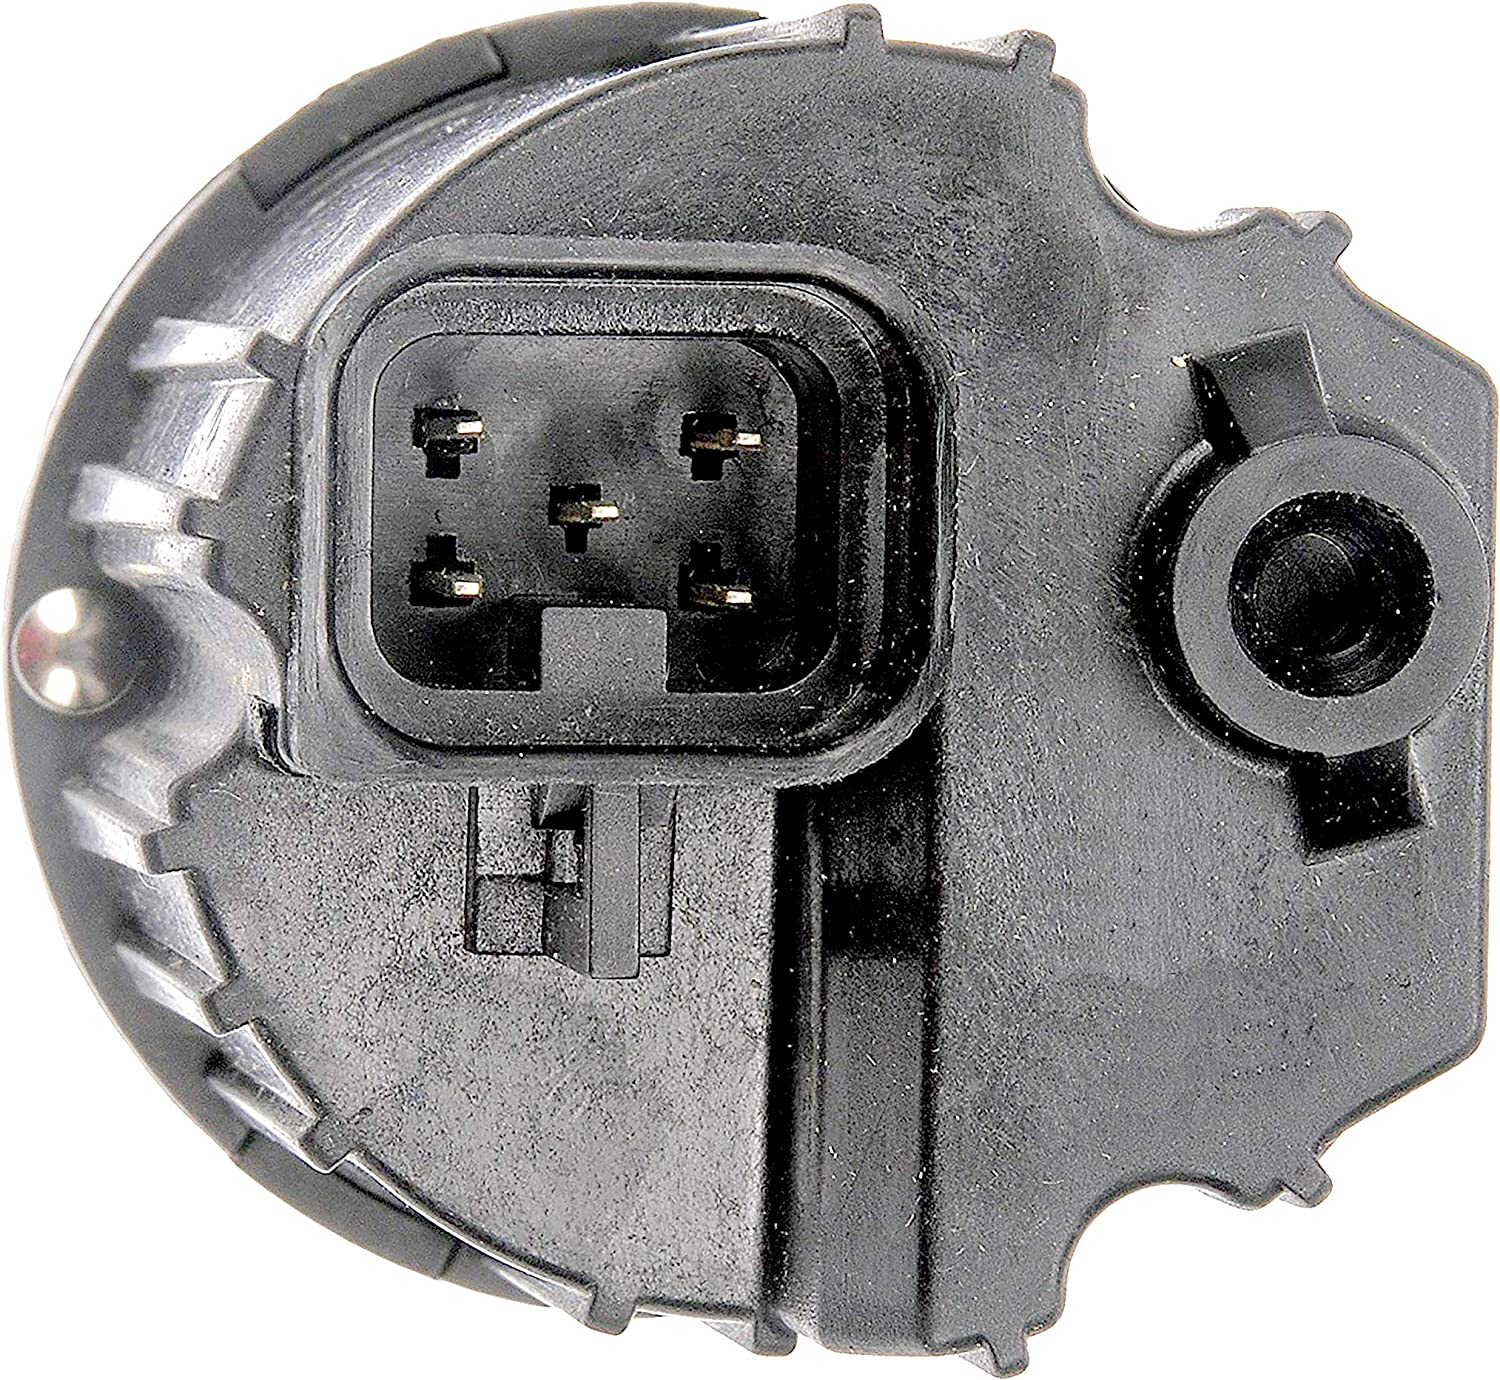 NEW GM GMC SUBURBAN FRONT Actuator Switch 1996 1997 SOLENOID SWITCH